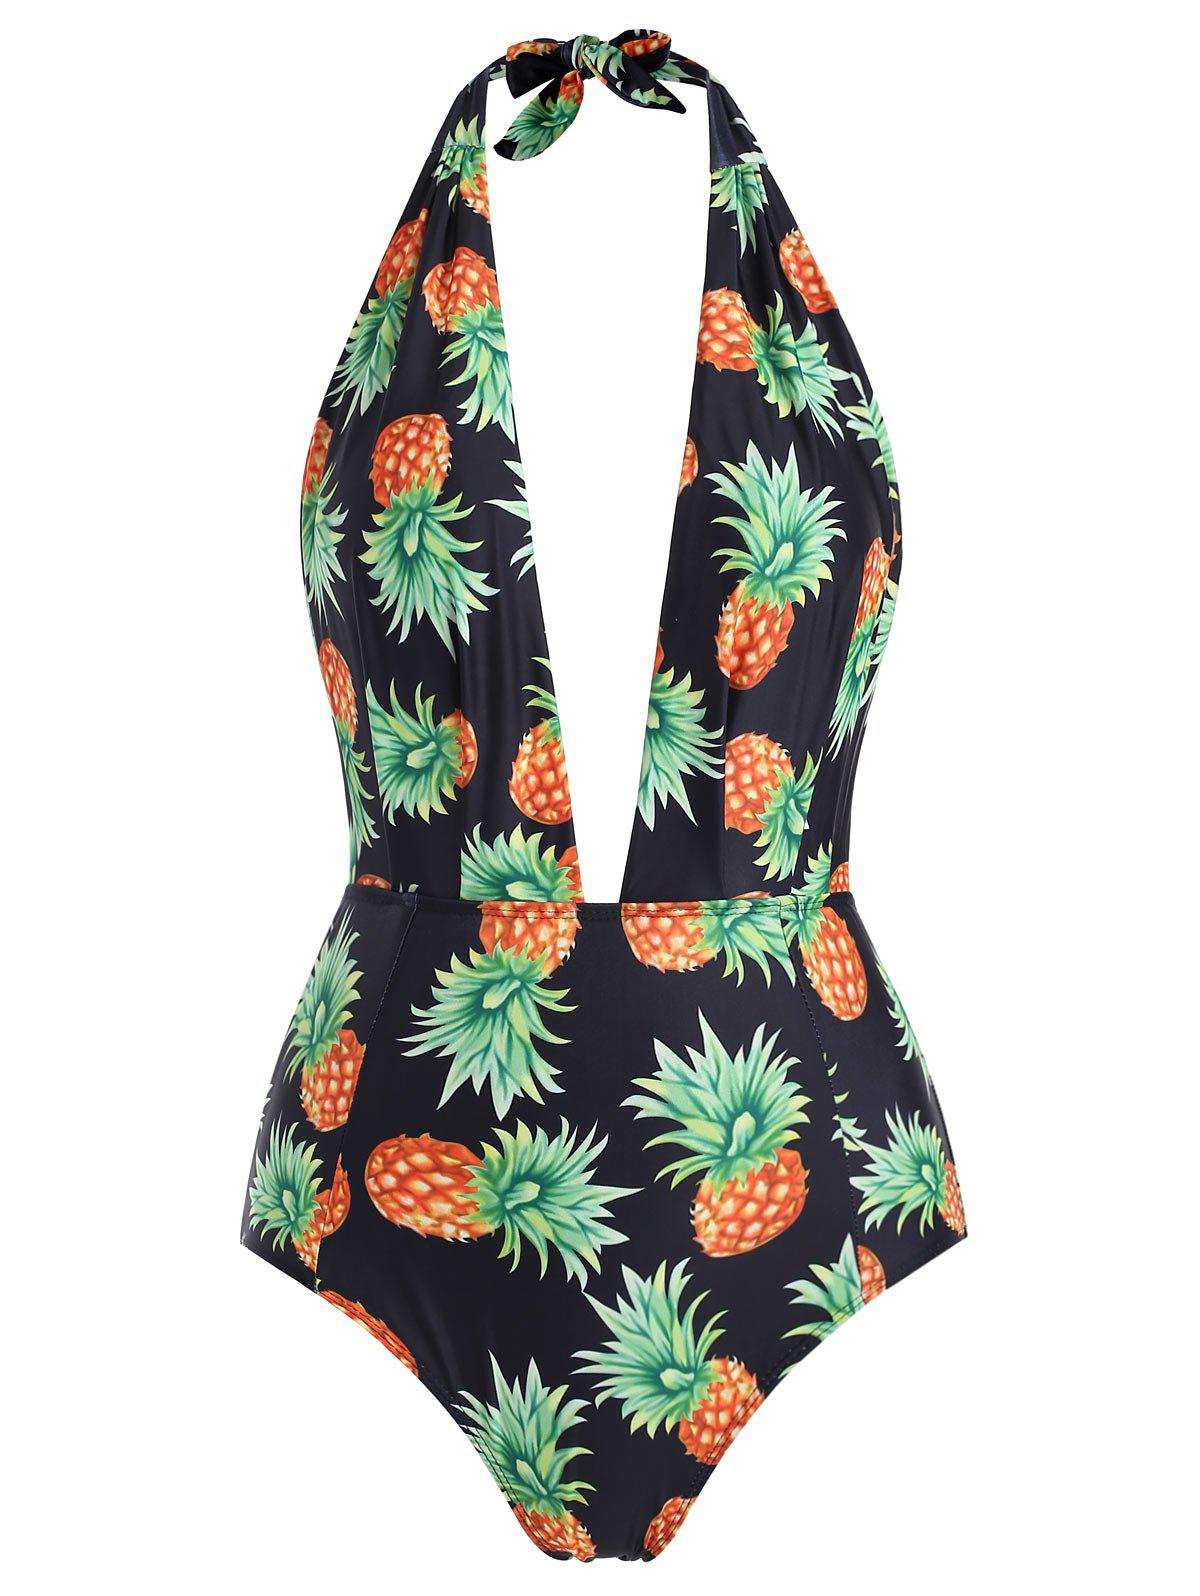 d4a90d6e40372 2019 Pineapple Print One-piece Swimsuit